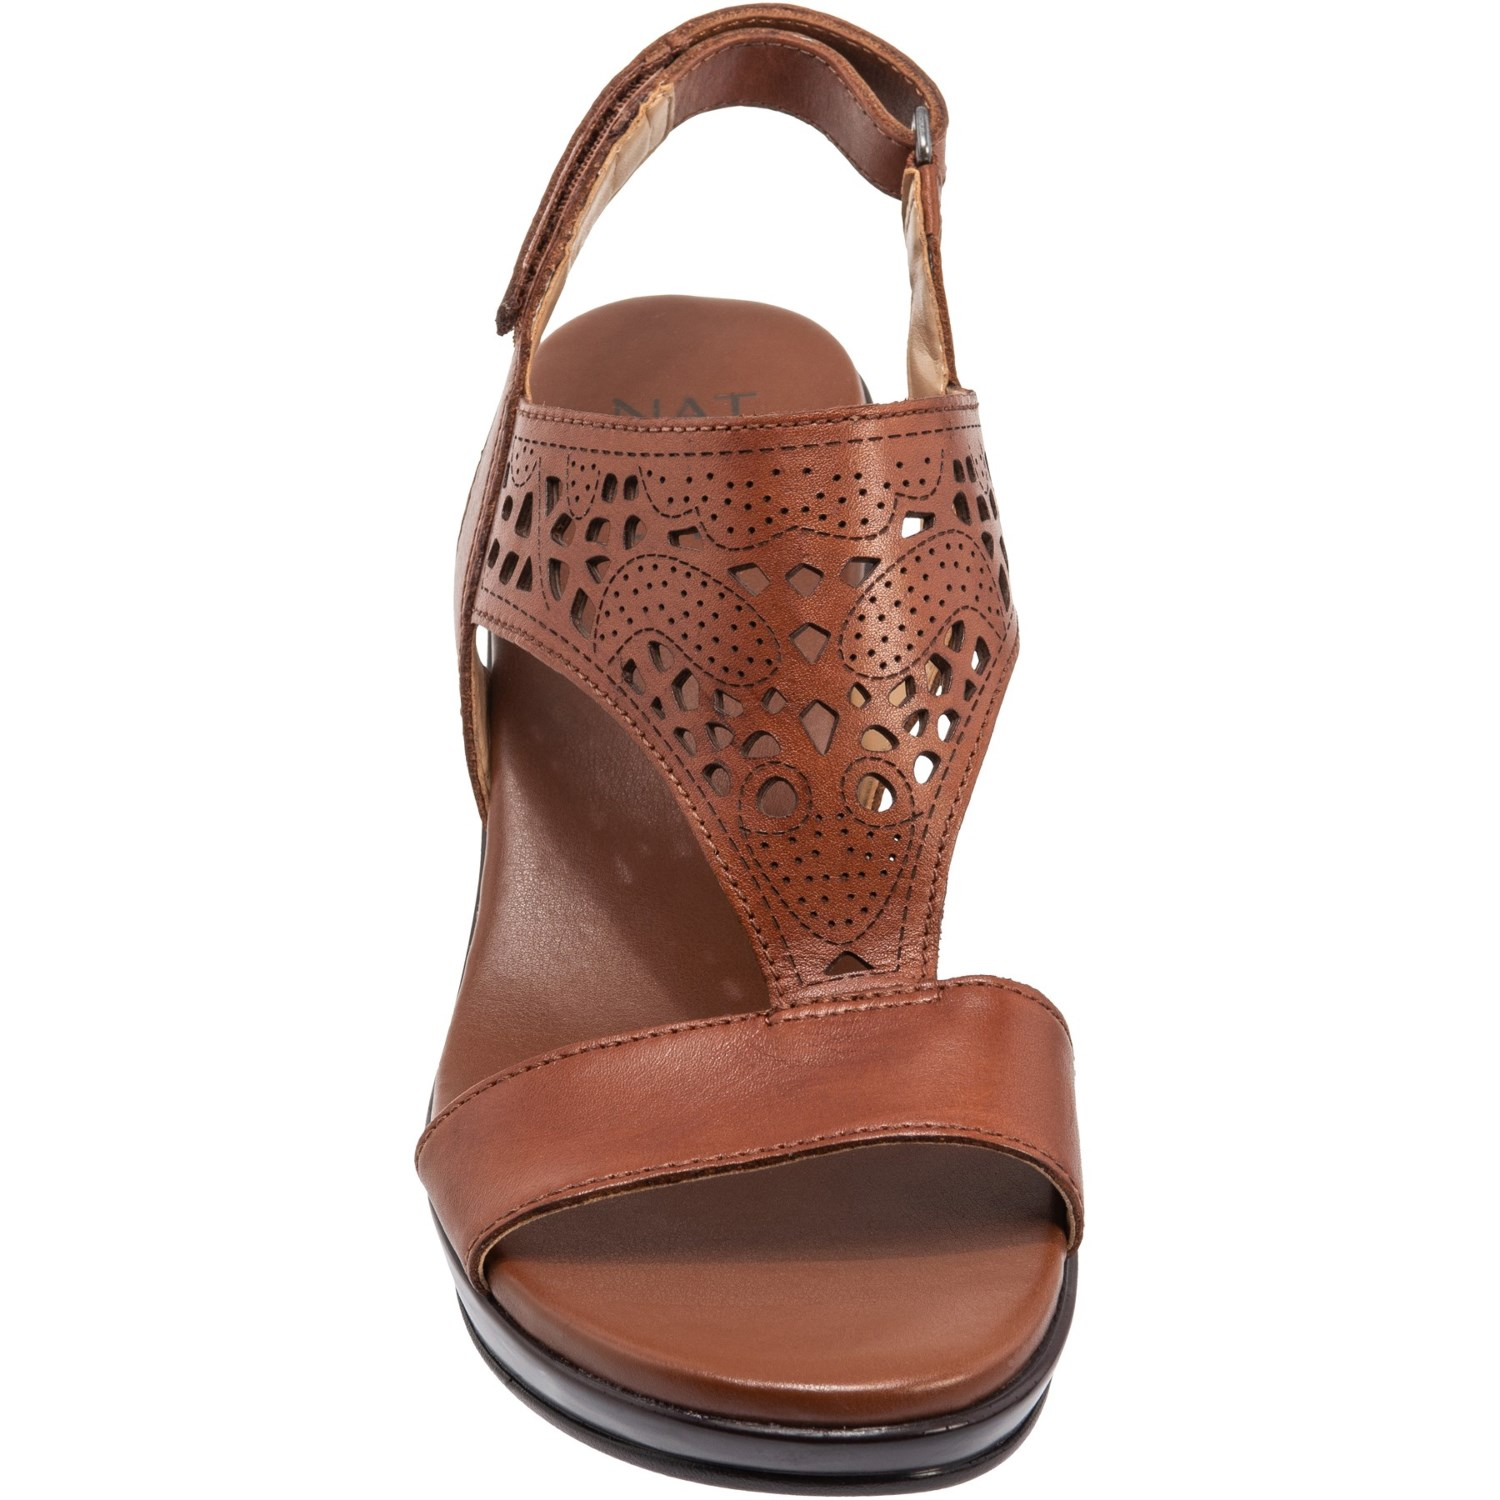 763f0f25c410 Naturalizer Veda Wedge Sandals (For Women) - Save 33%